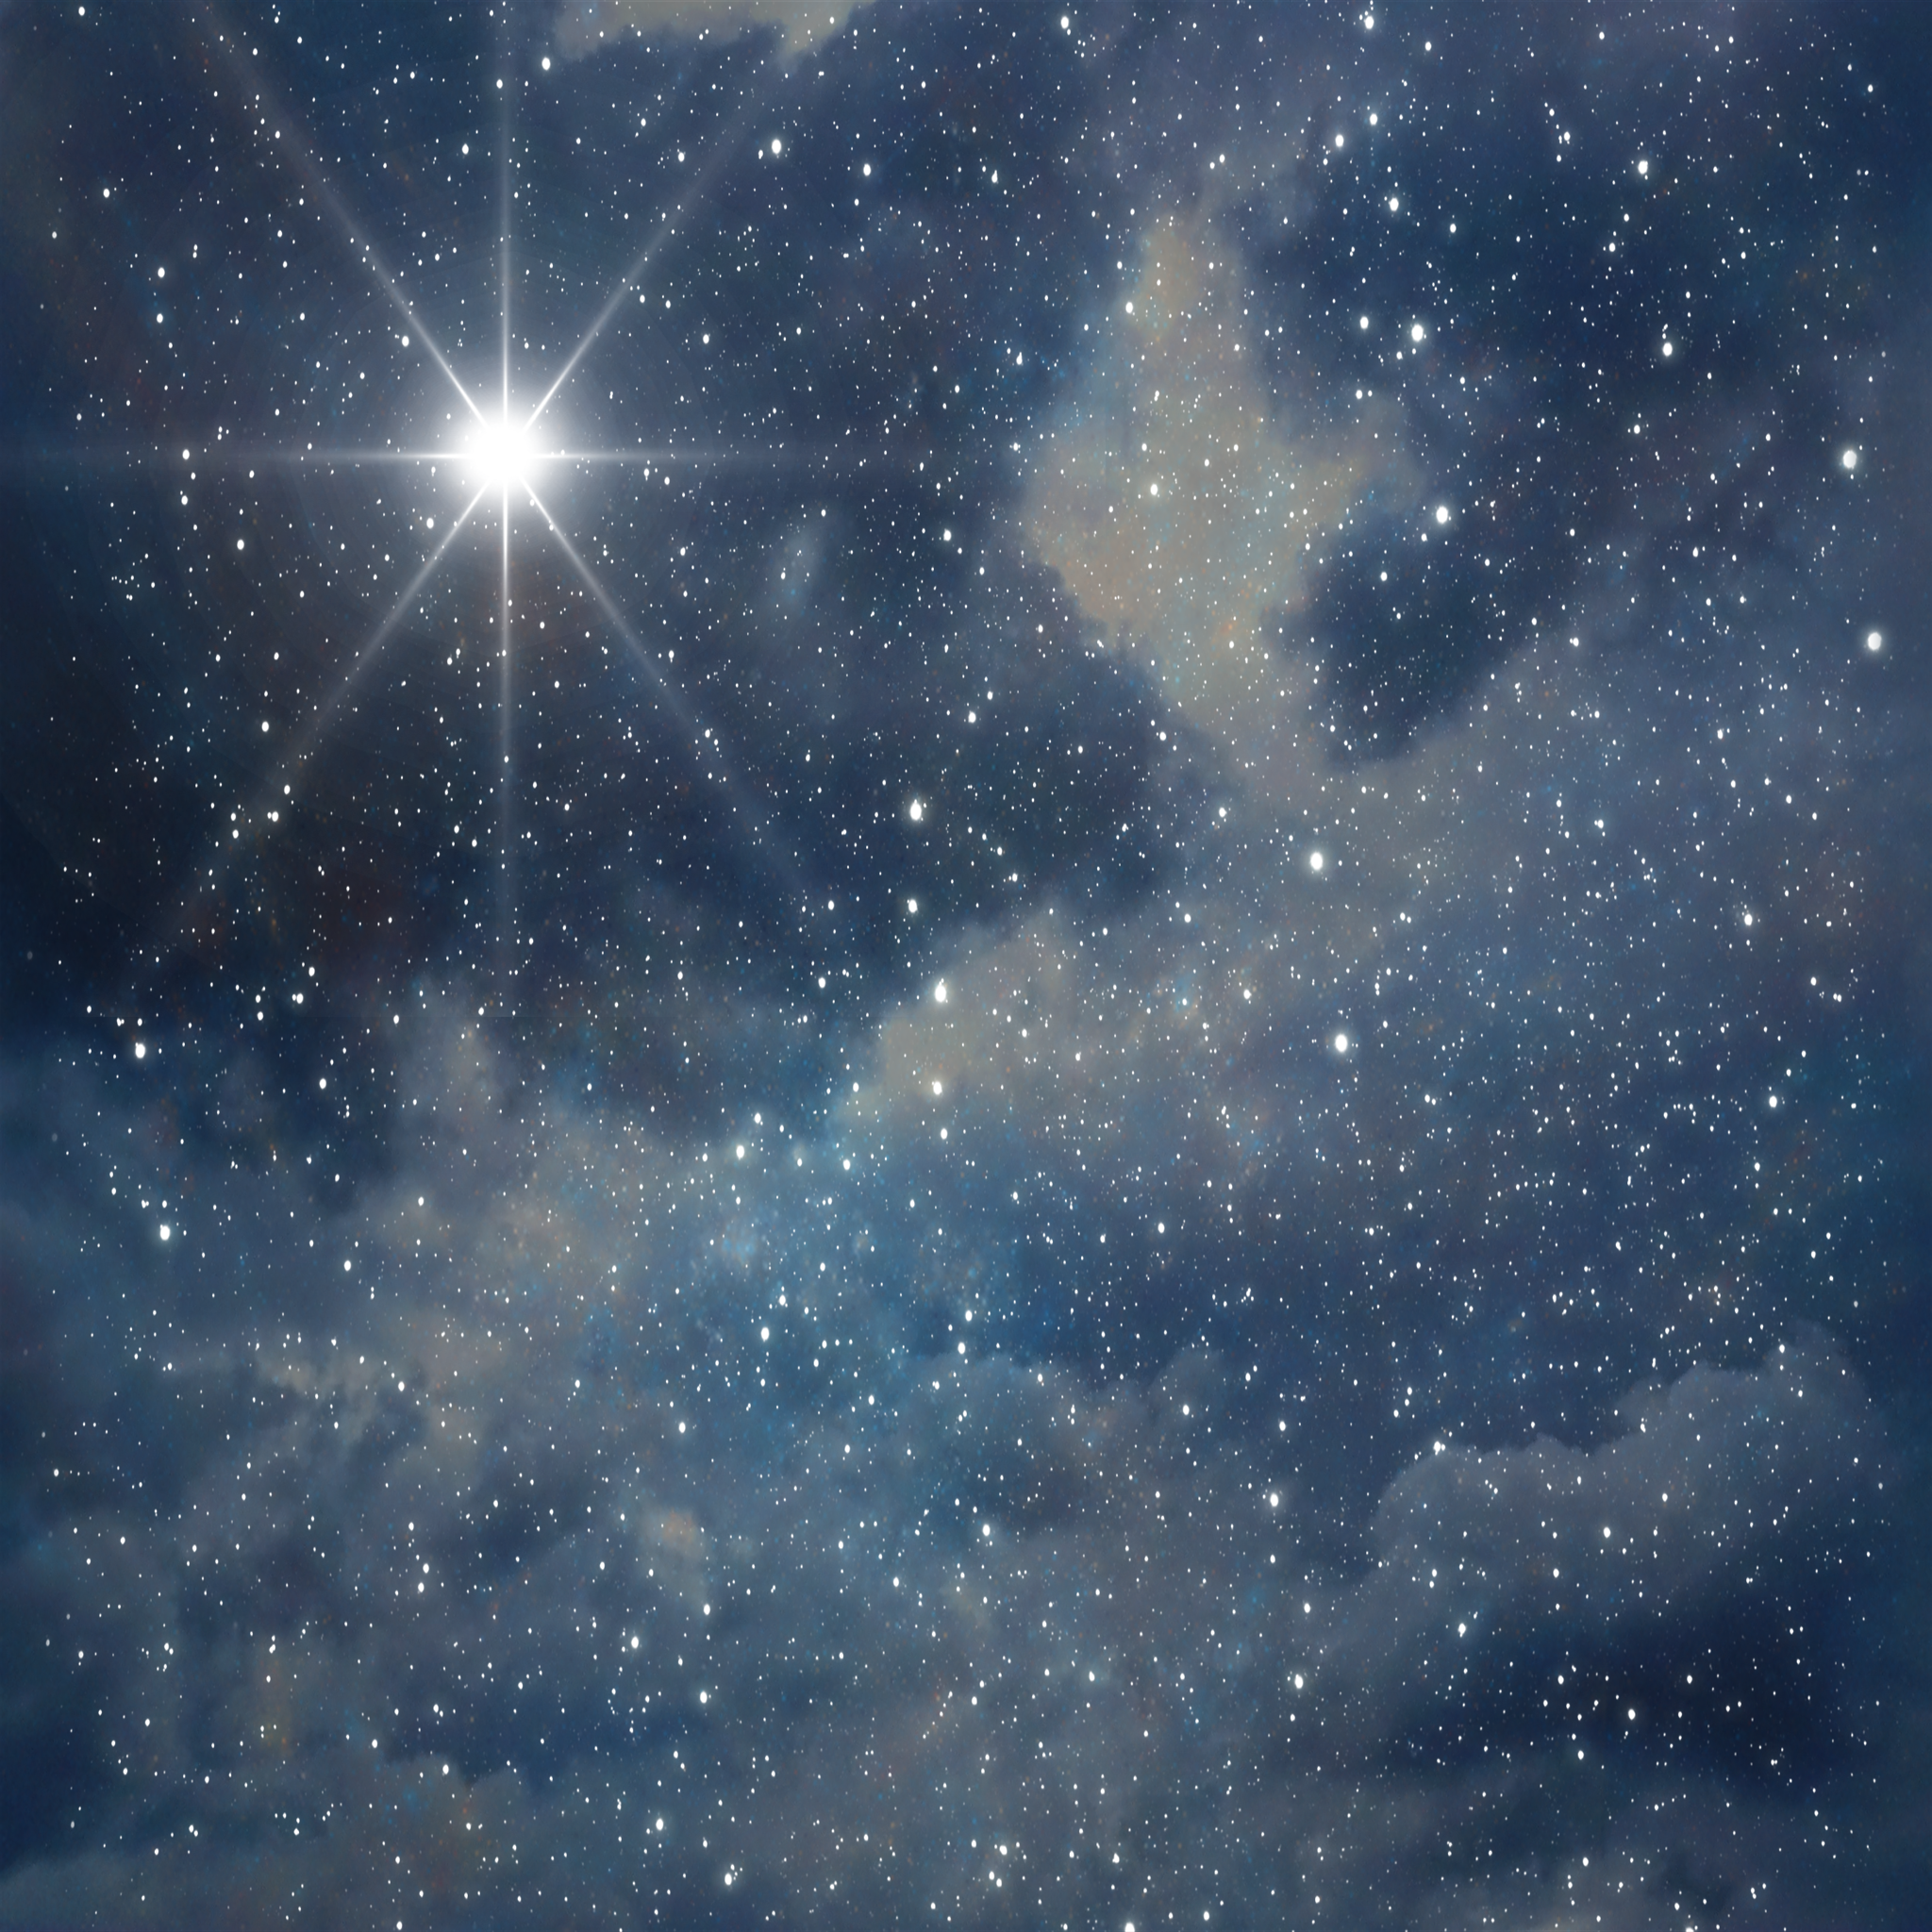 Night Sky Background Tumblr Images amp Pictures   Becuo 2048x2048